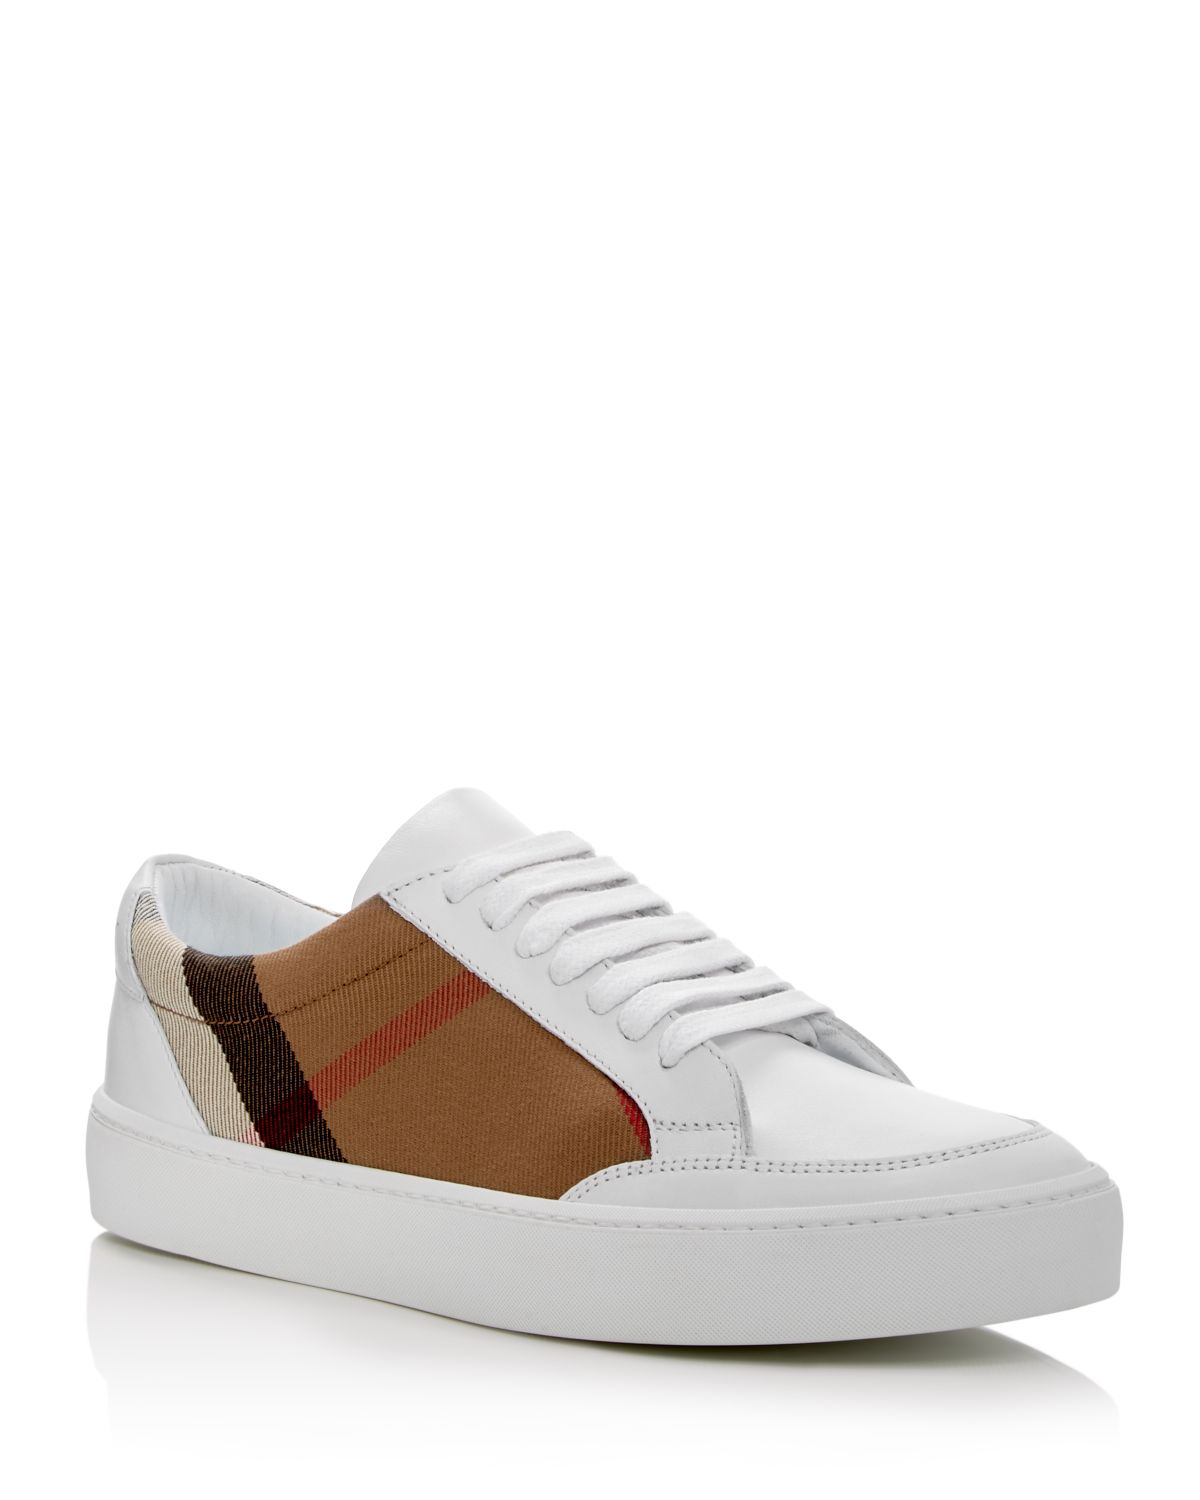 Burberry Salmond Lace Up Sneakers